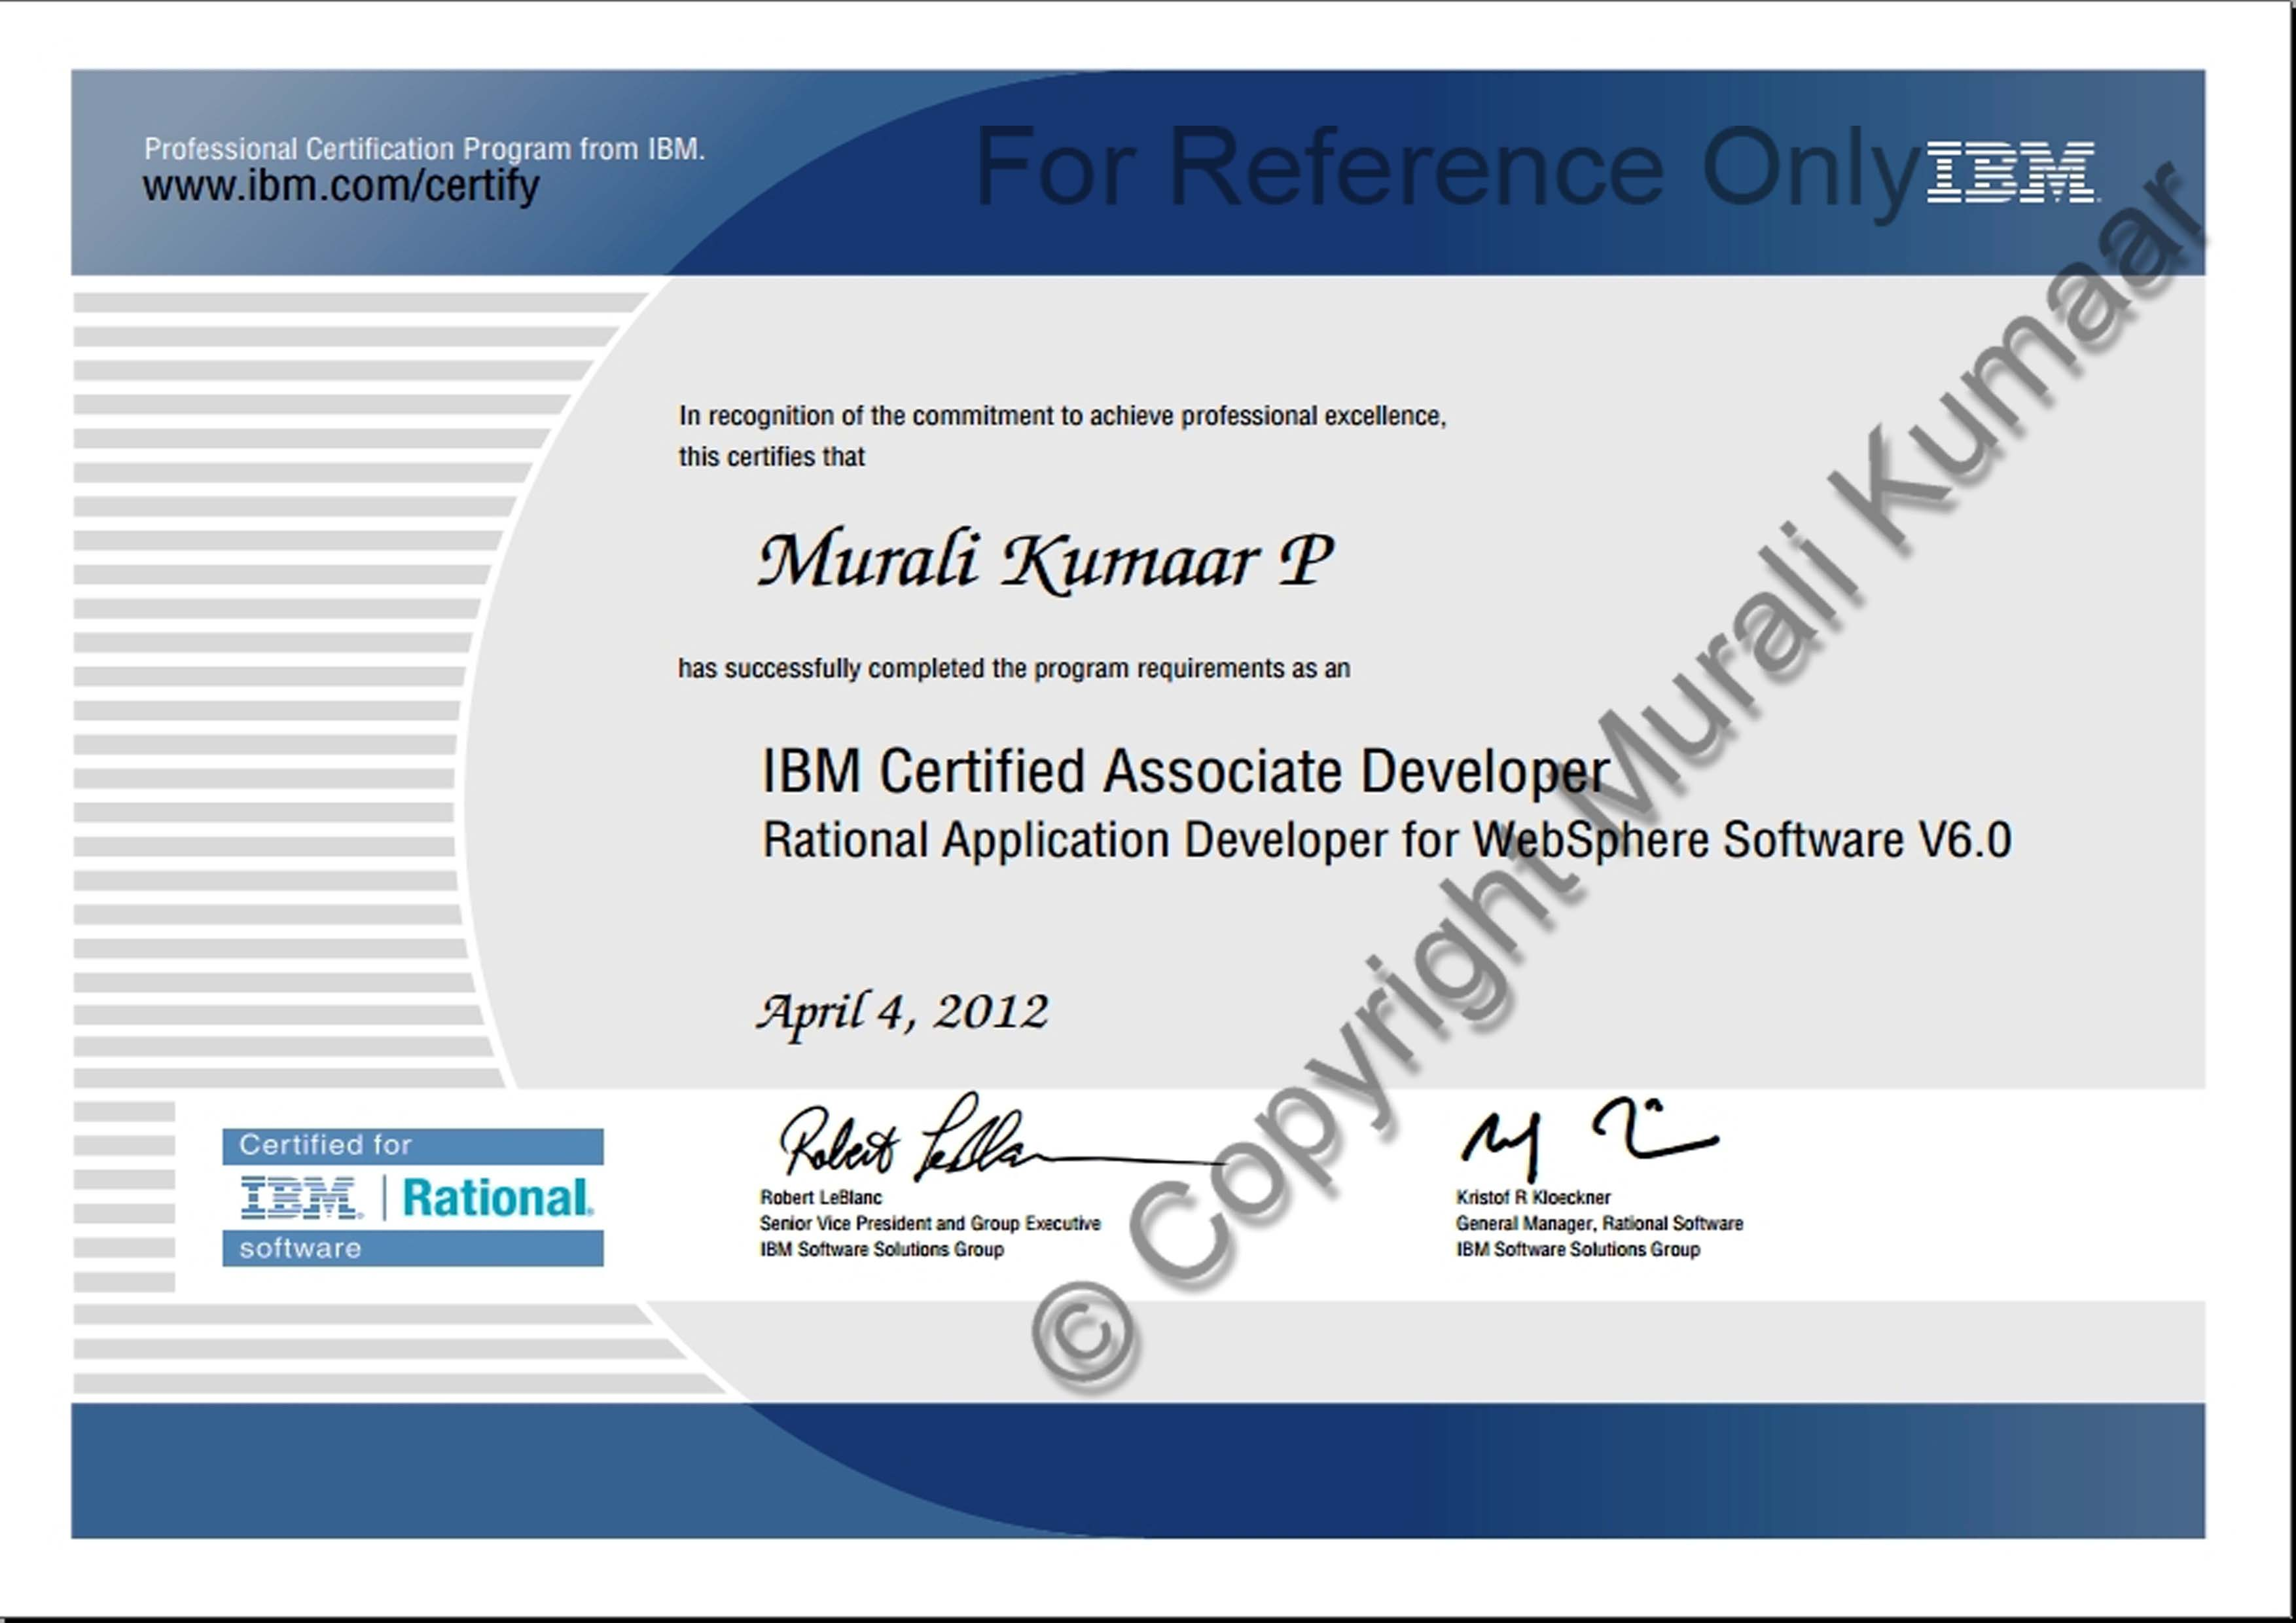 IBM Certified Associate Developer Certificate